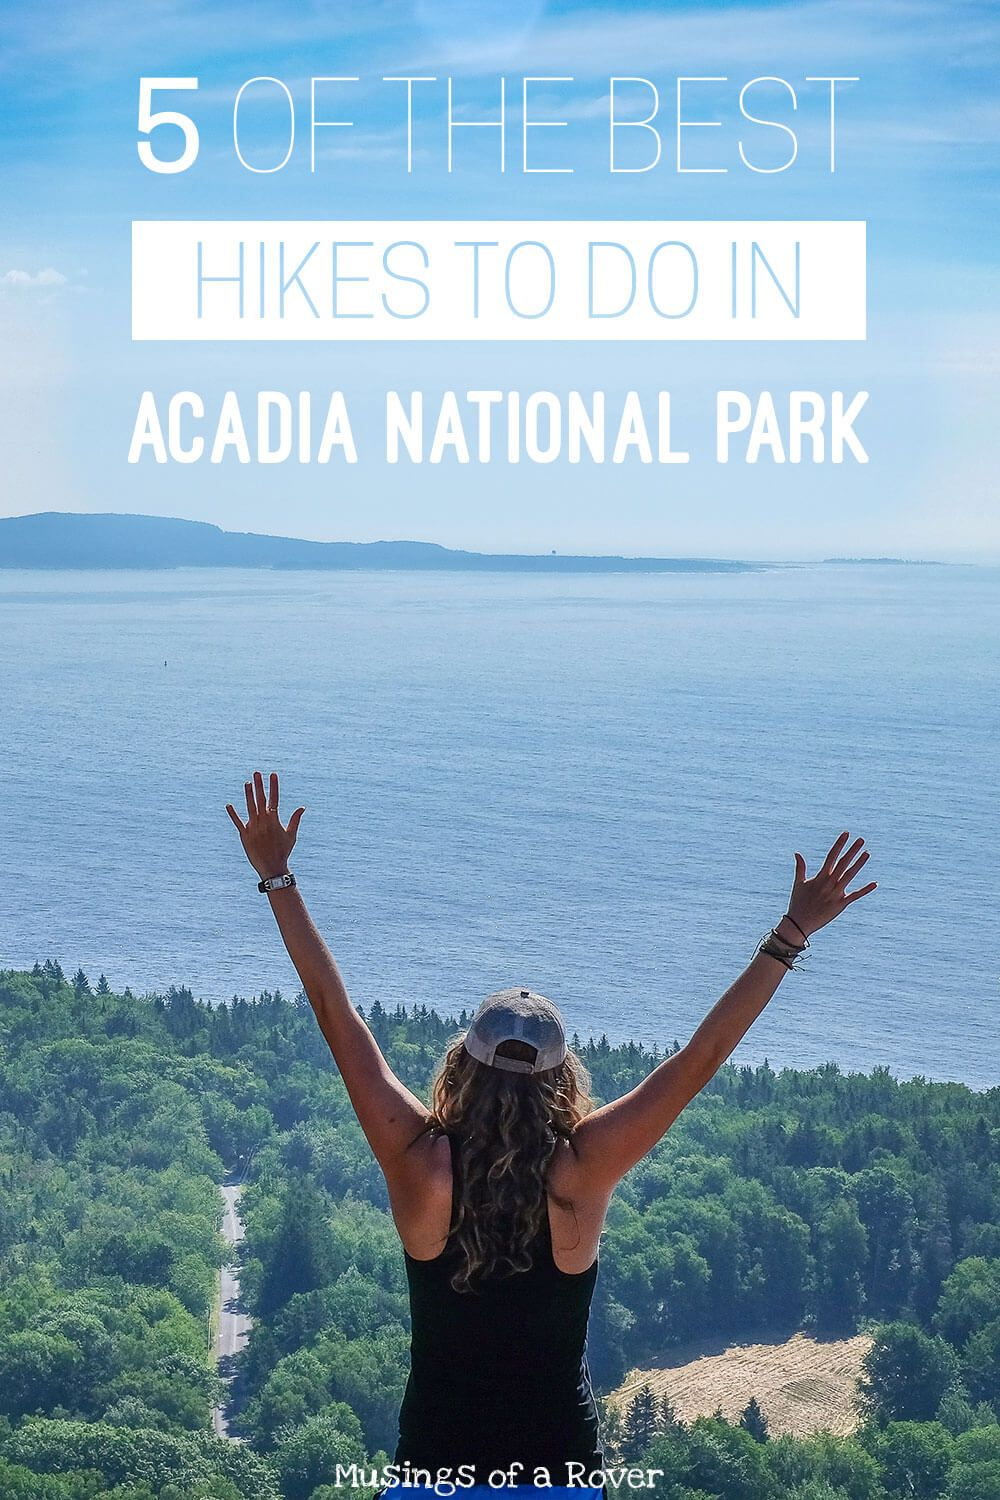 Want to know what the 5 best hikes in Acadia National Park are? These are the ones you don't want to miss on your first visit to this national park! I include everything from a challenging, iron-rung hike to an easy 1/2 mile stroll atop Cadillac Mountain. You definitely don't want to miss one of these hikes - they are your Must Dos for Acadia National Park!